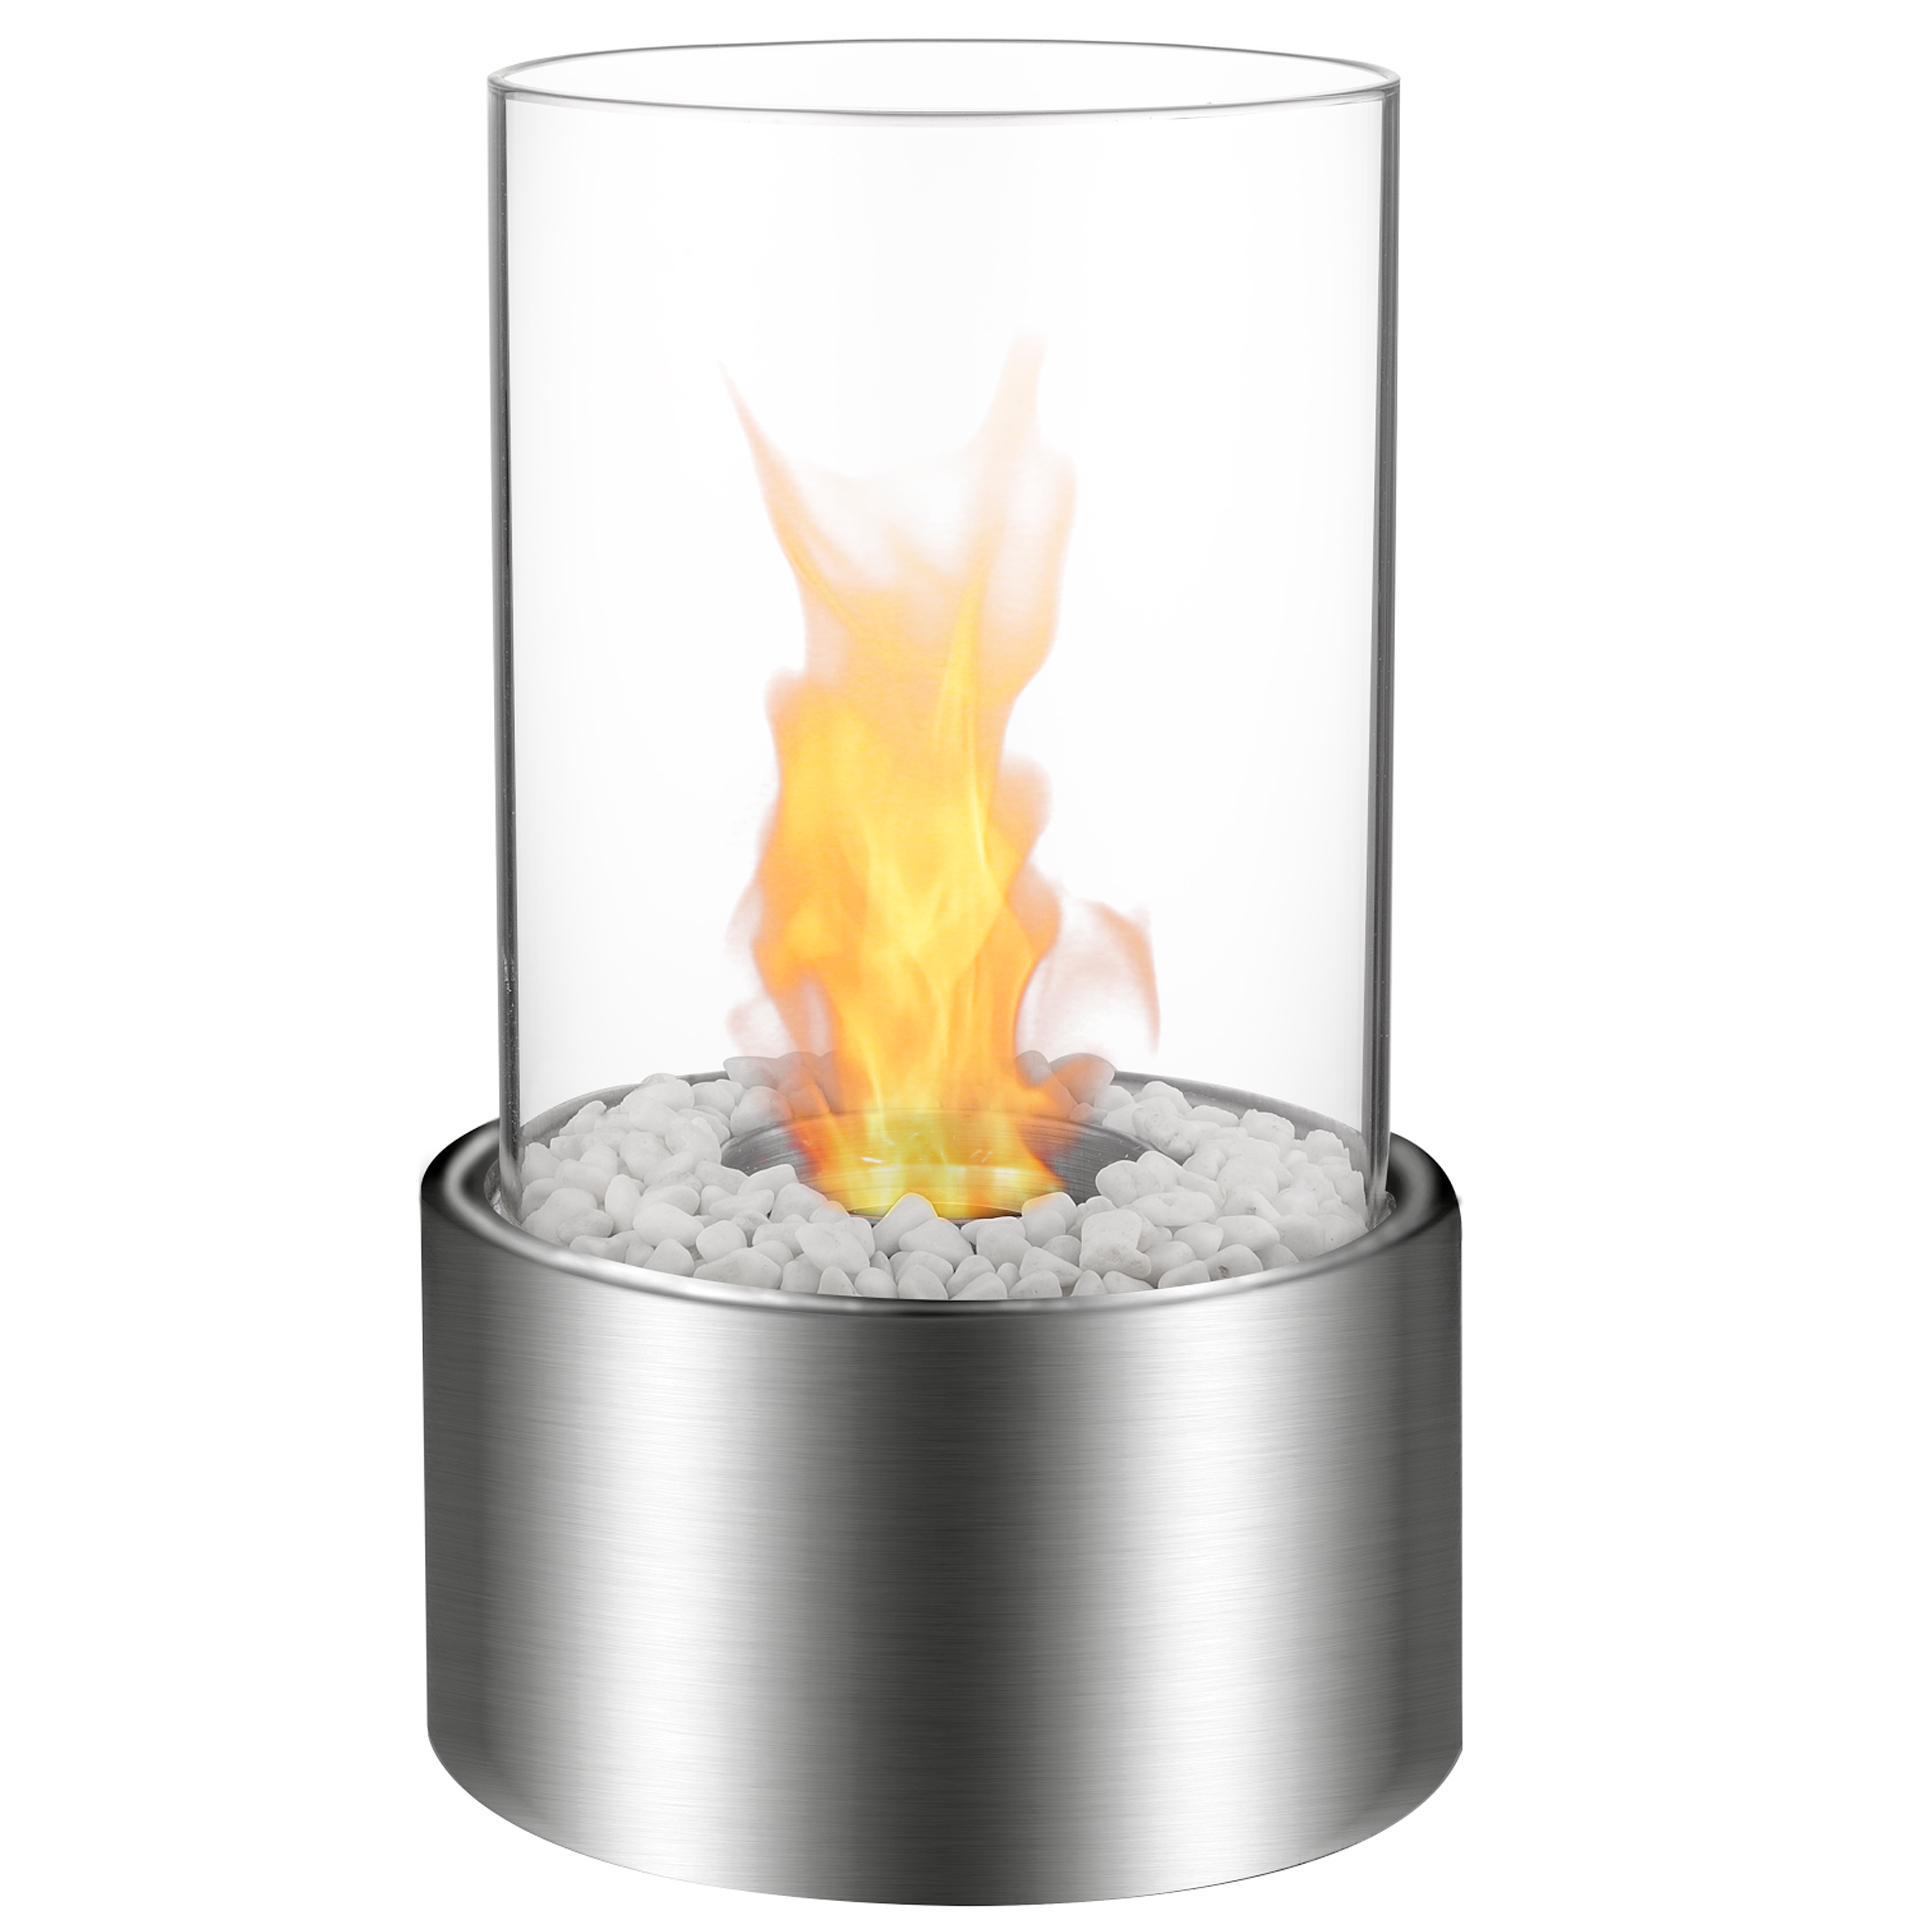 Regal Flame Eden Tabletop Firepit Ethanol Fireplace Stainless Steel